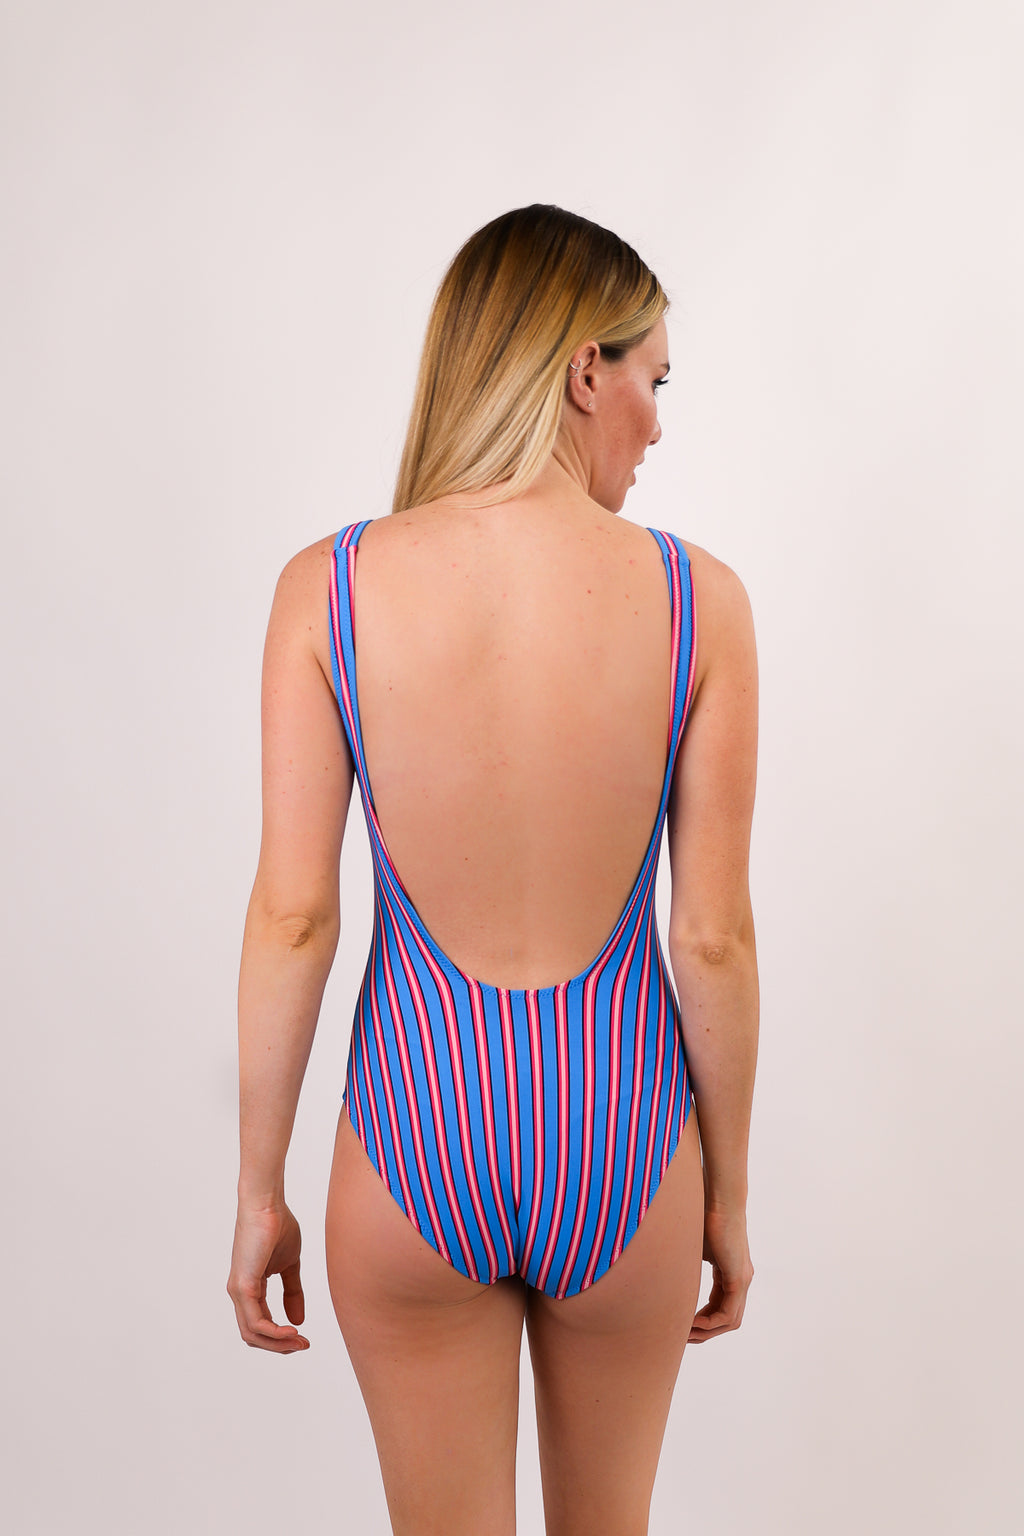 The Anne-Marie One-Piece